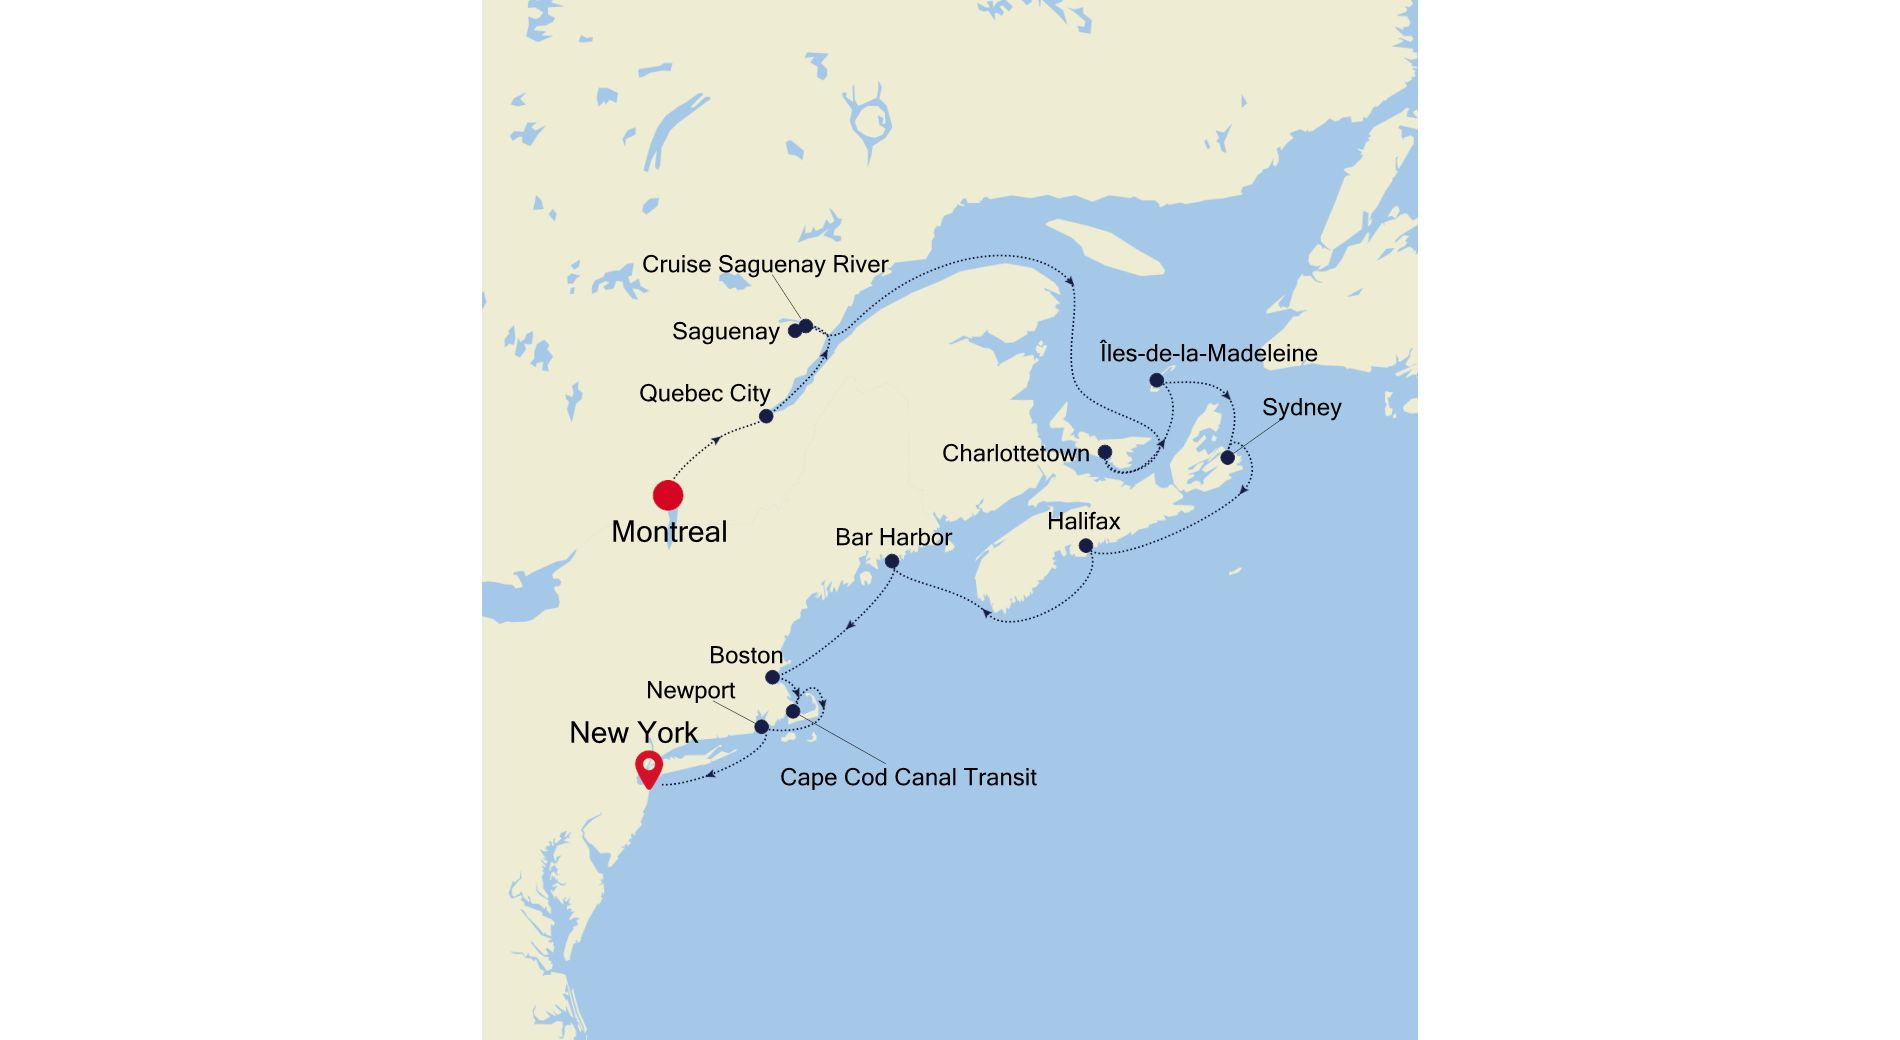 WH211017011 - Montreal to New York